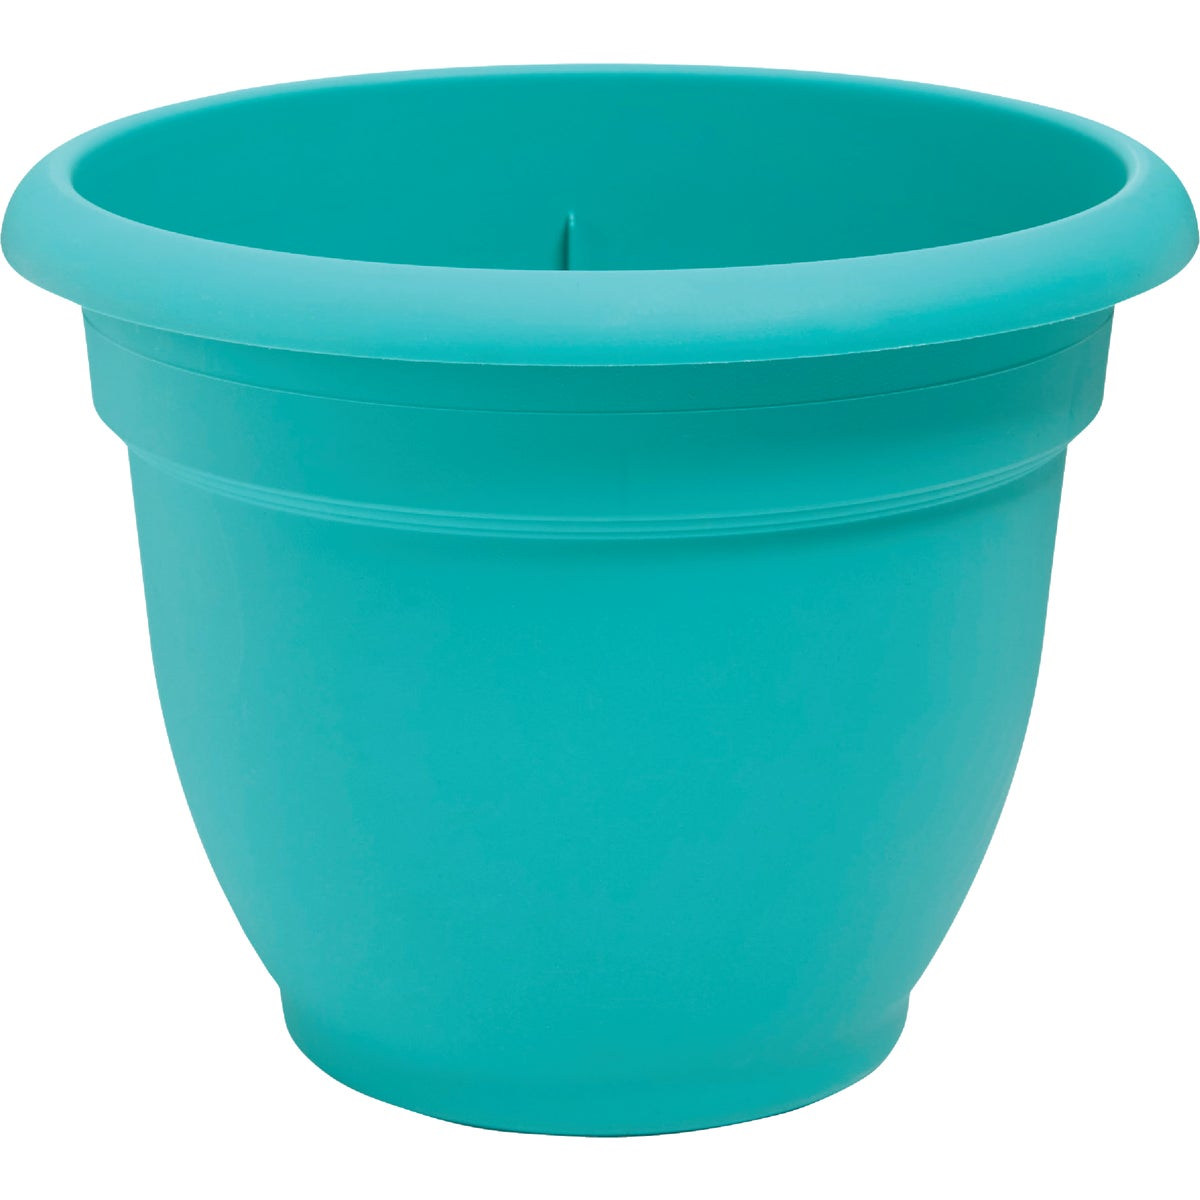 "10"" BLUE ARIANA POT - 465101-1001 by Fiskars Brands Inc"